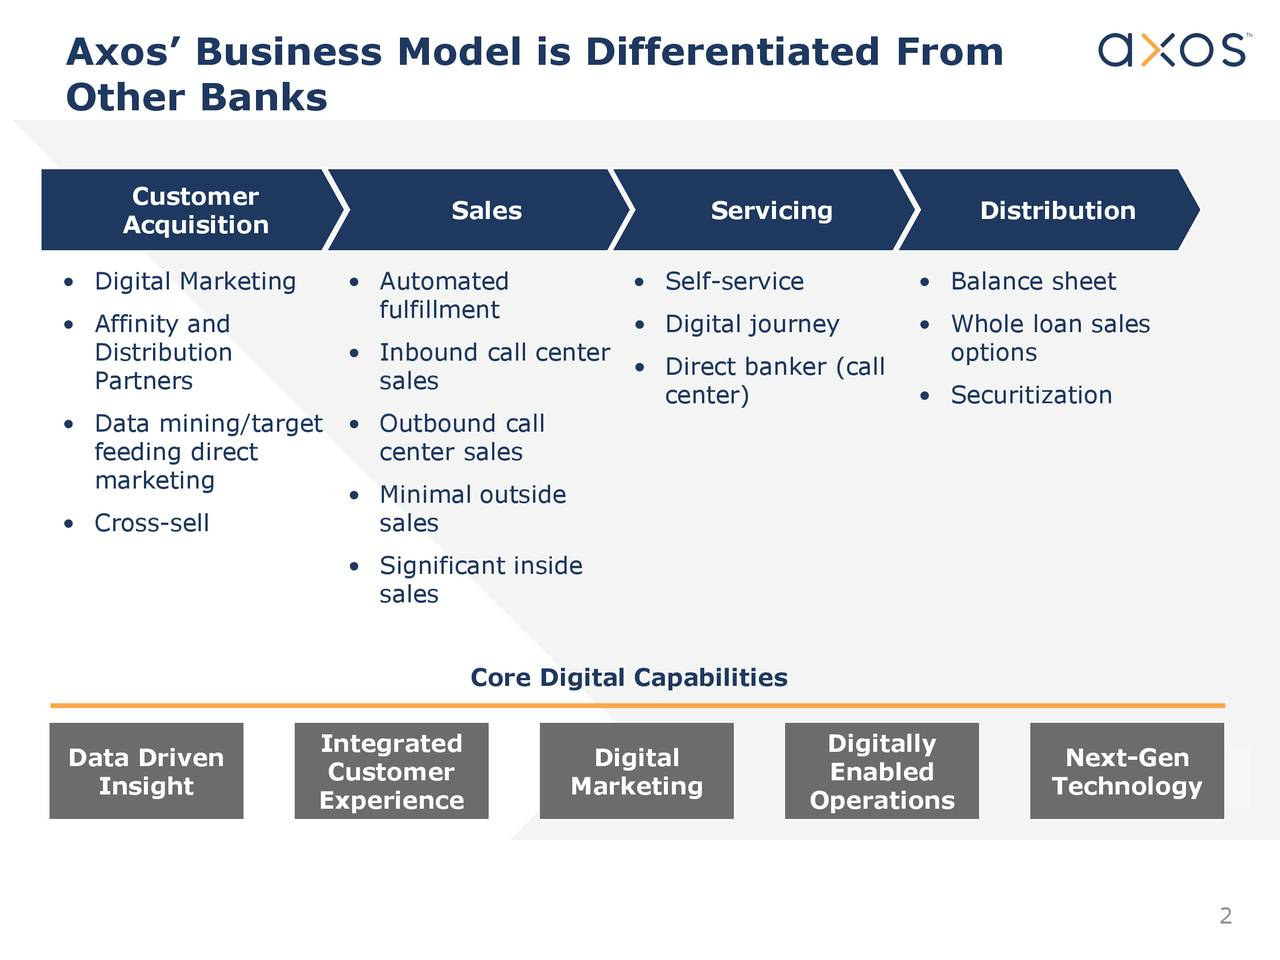 Axos' Business Model is Differentiated From